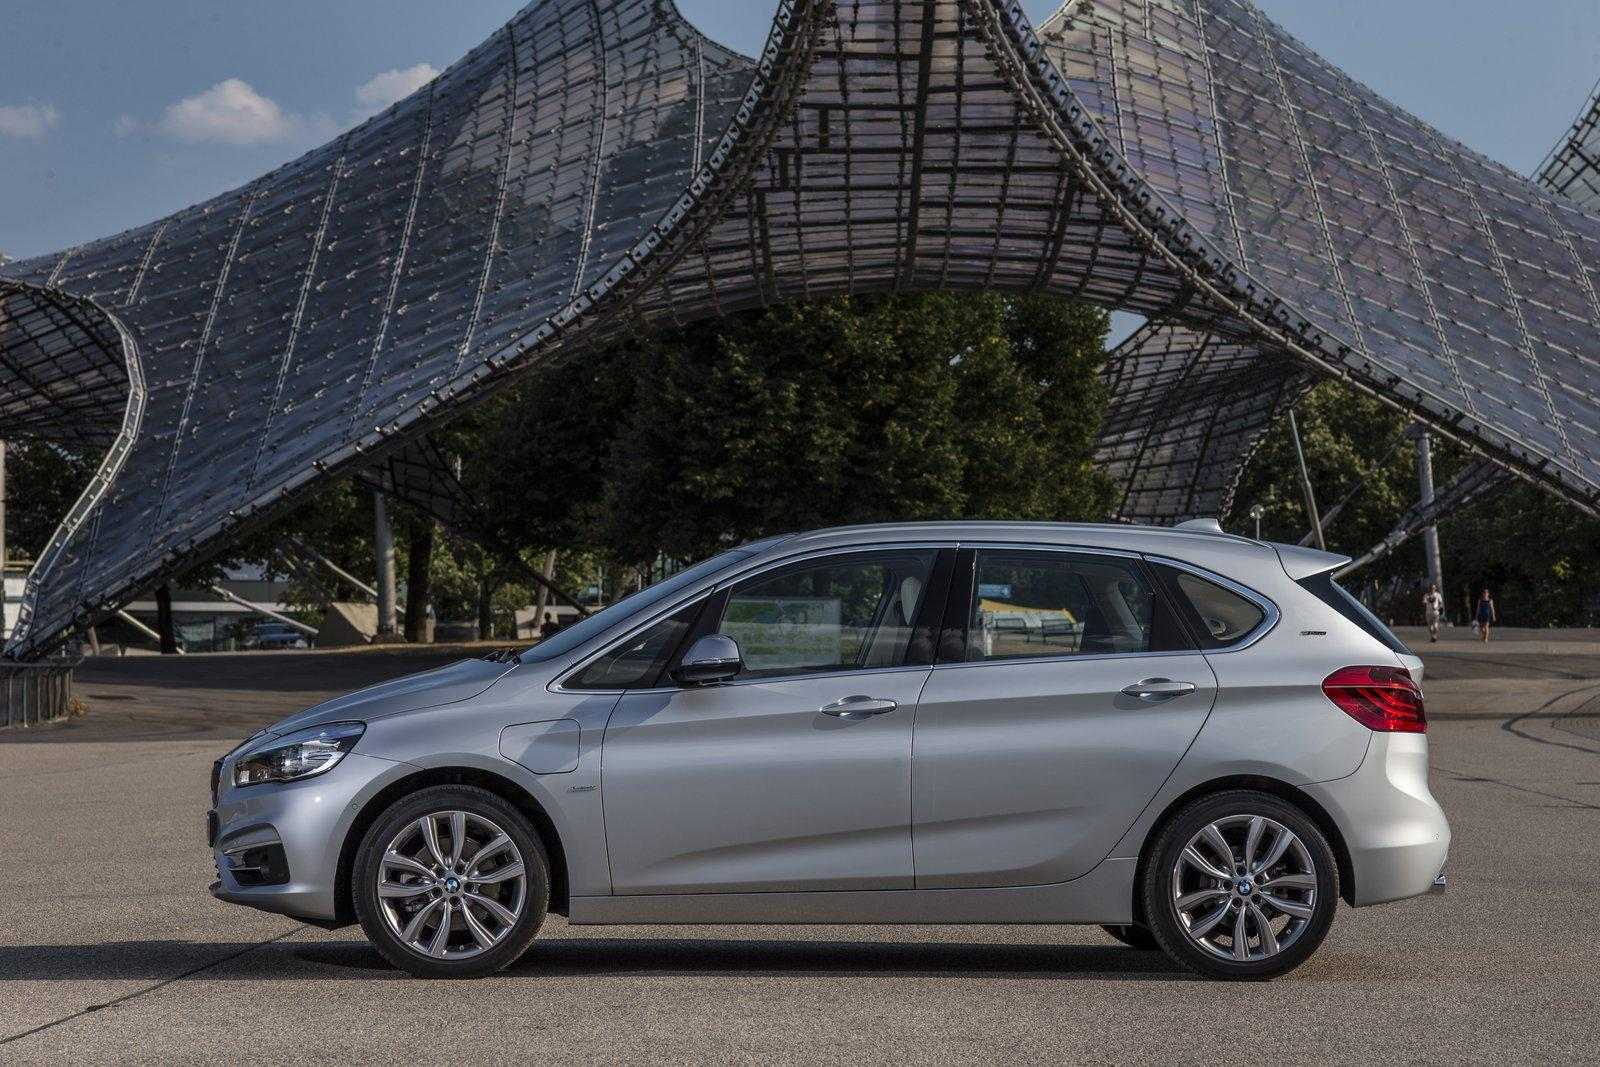 2015 BMW 225xe PHEV Active Tourer side unveiled